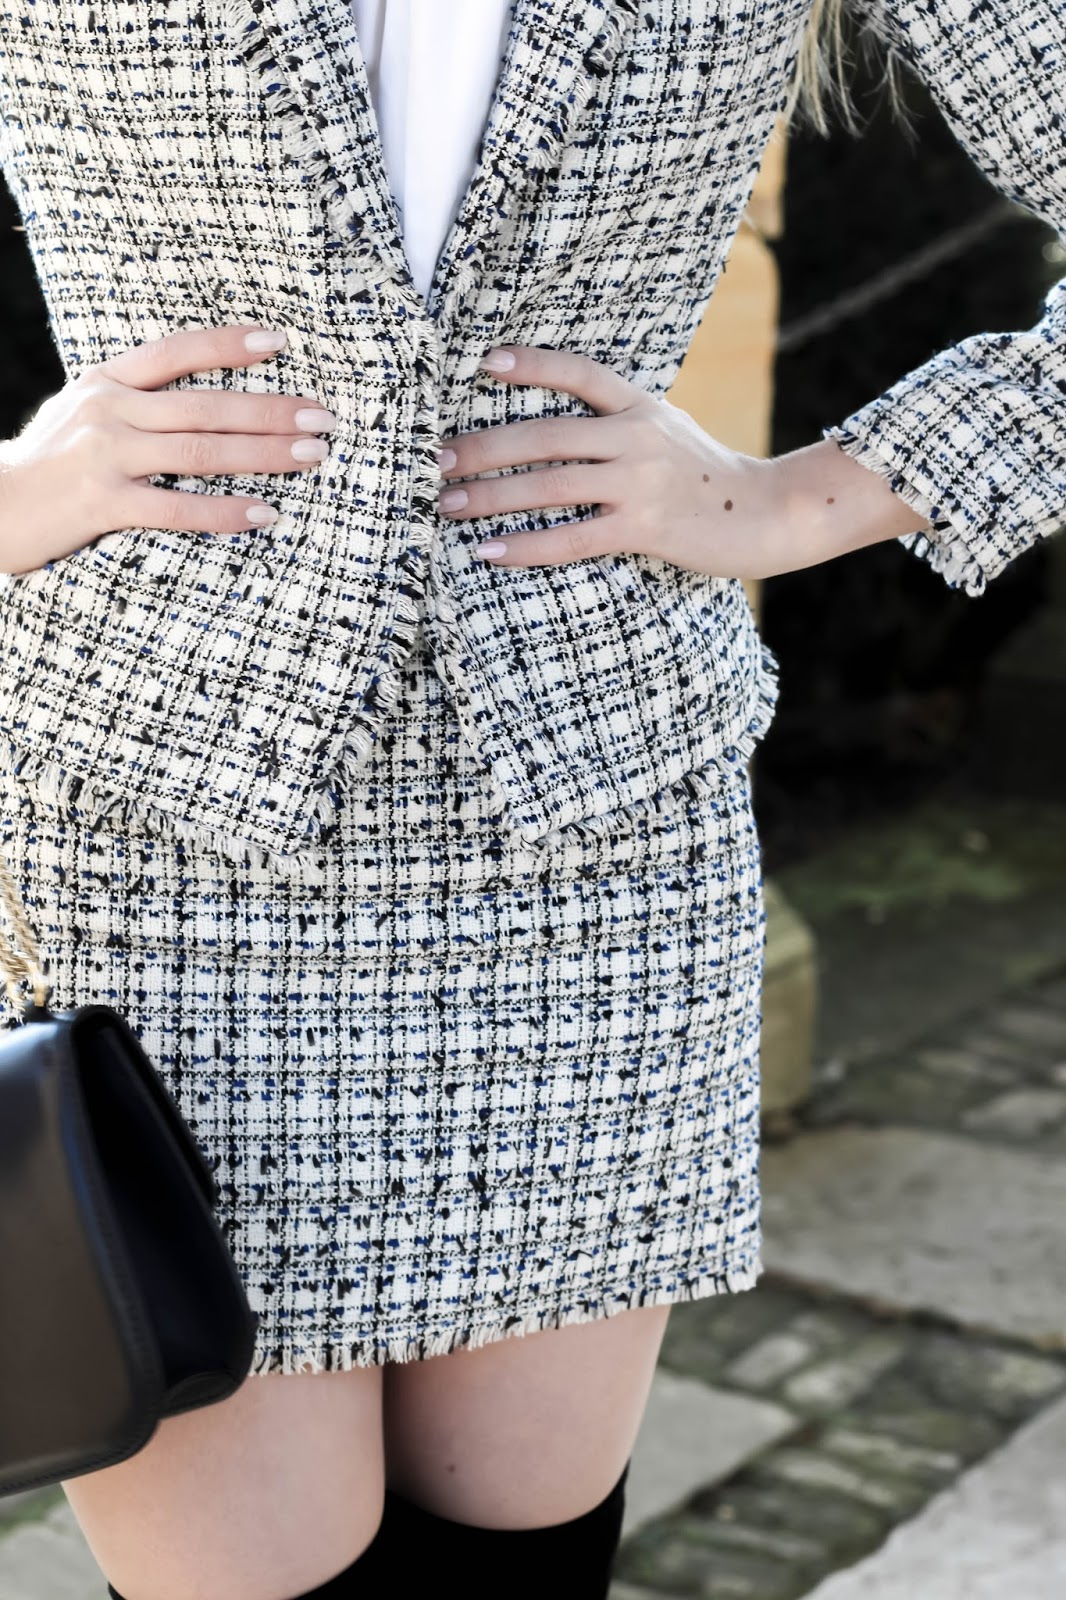 Black and White H&M Tweed Mini Skirt Suit